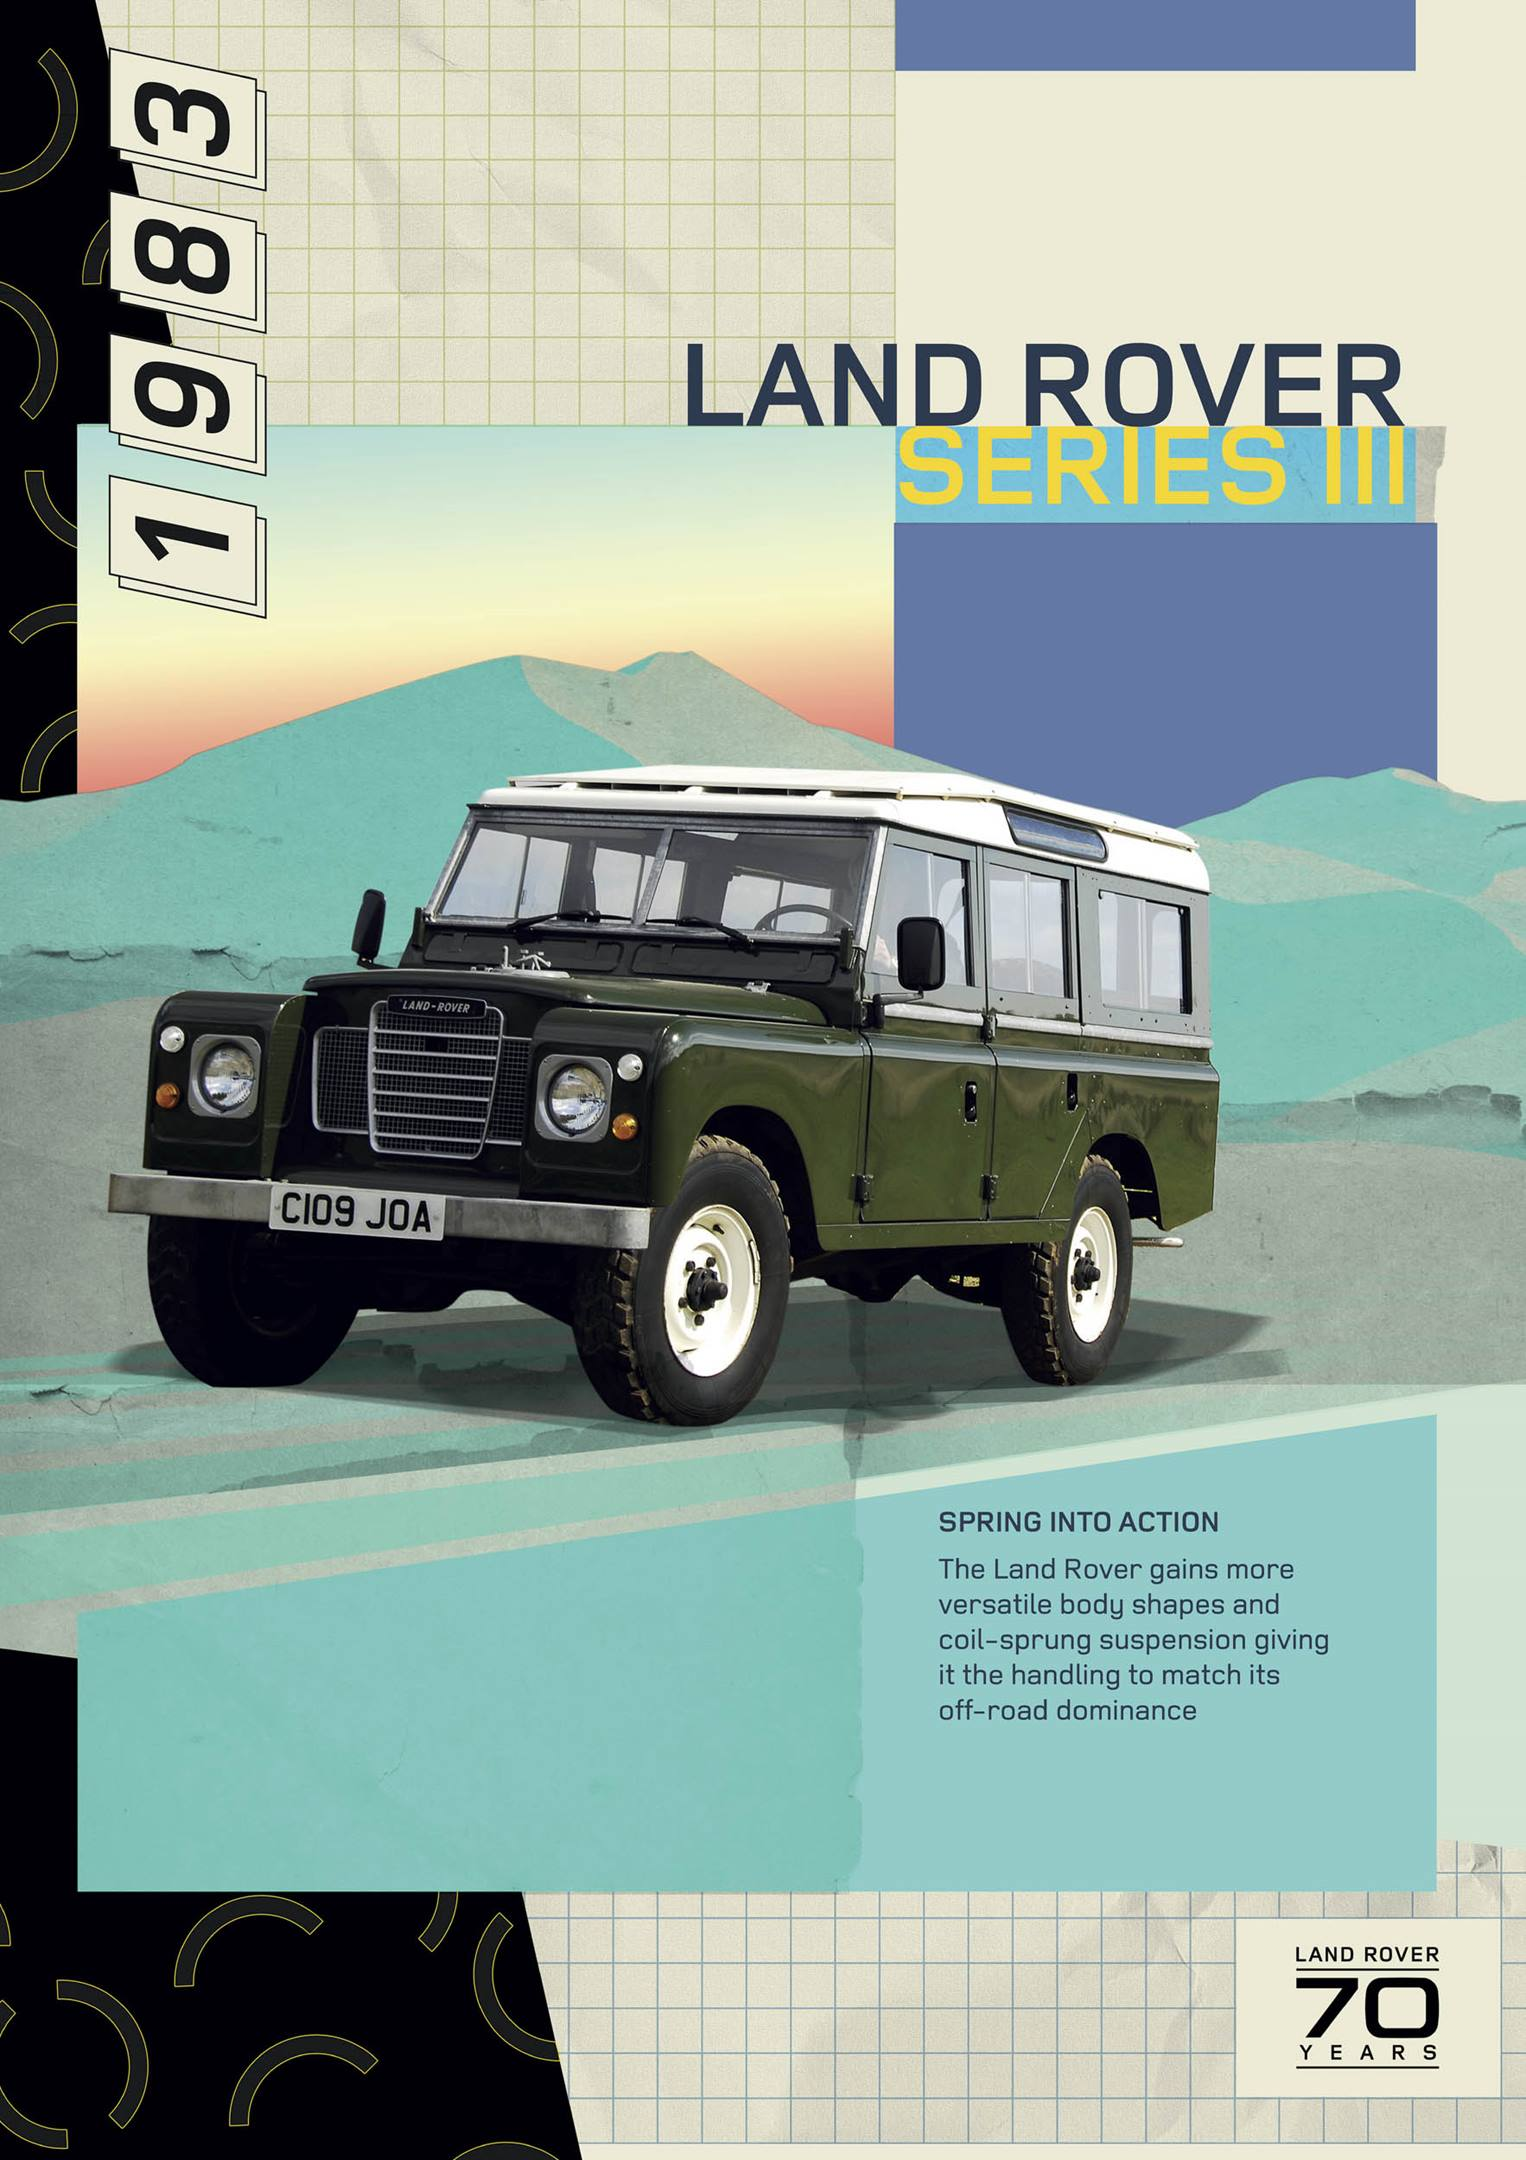 1983 Land Rover Series III poster